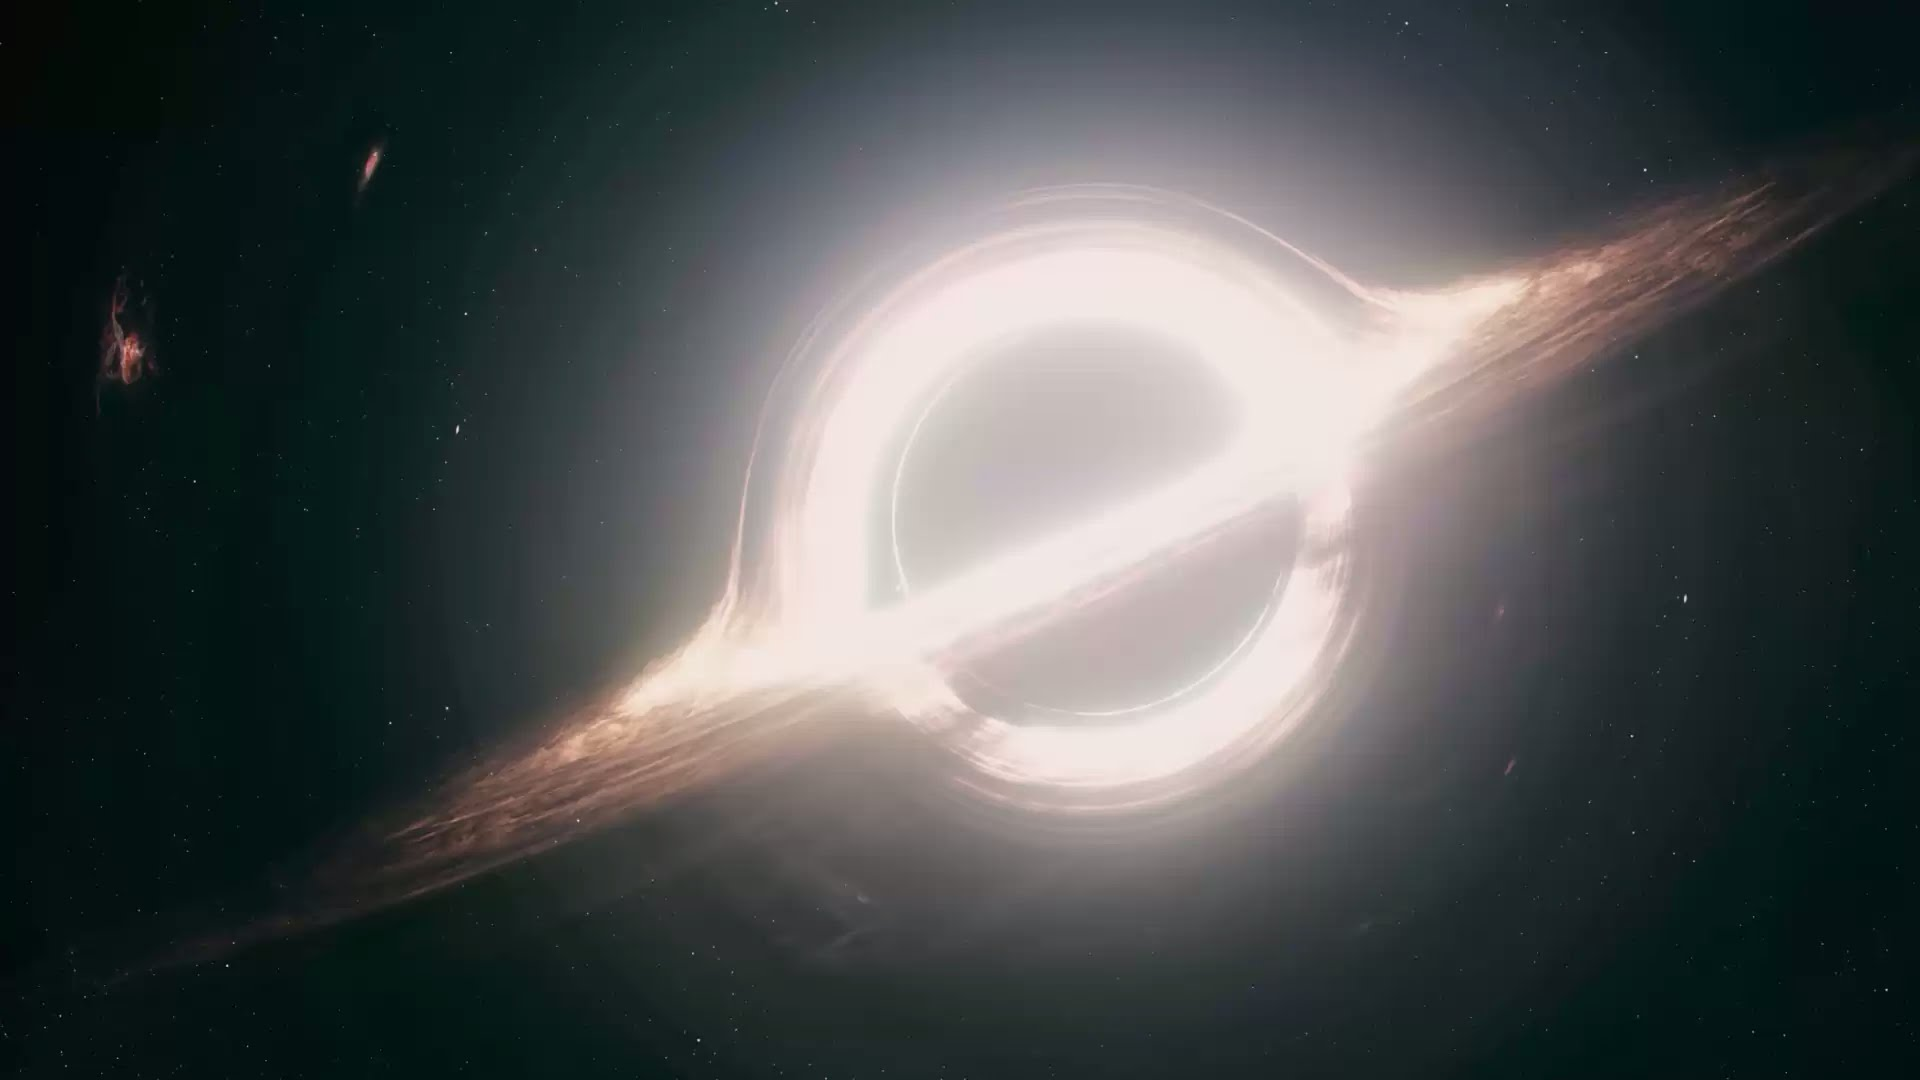 The Gargantua black hole from Interstellar. Credit: Double Negative